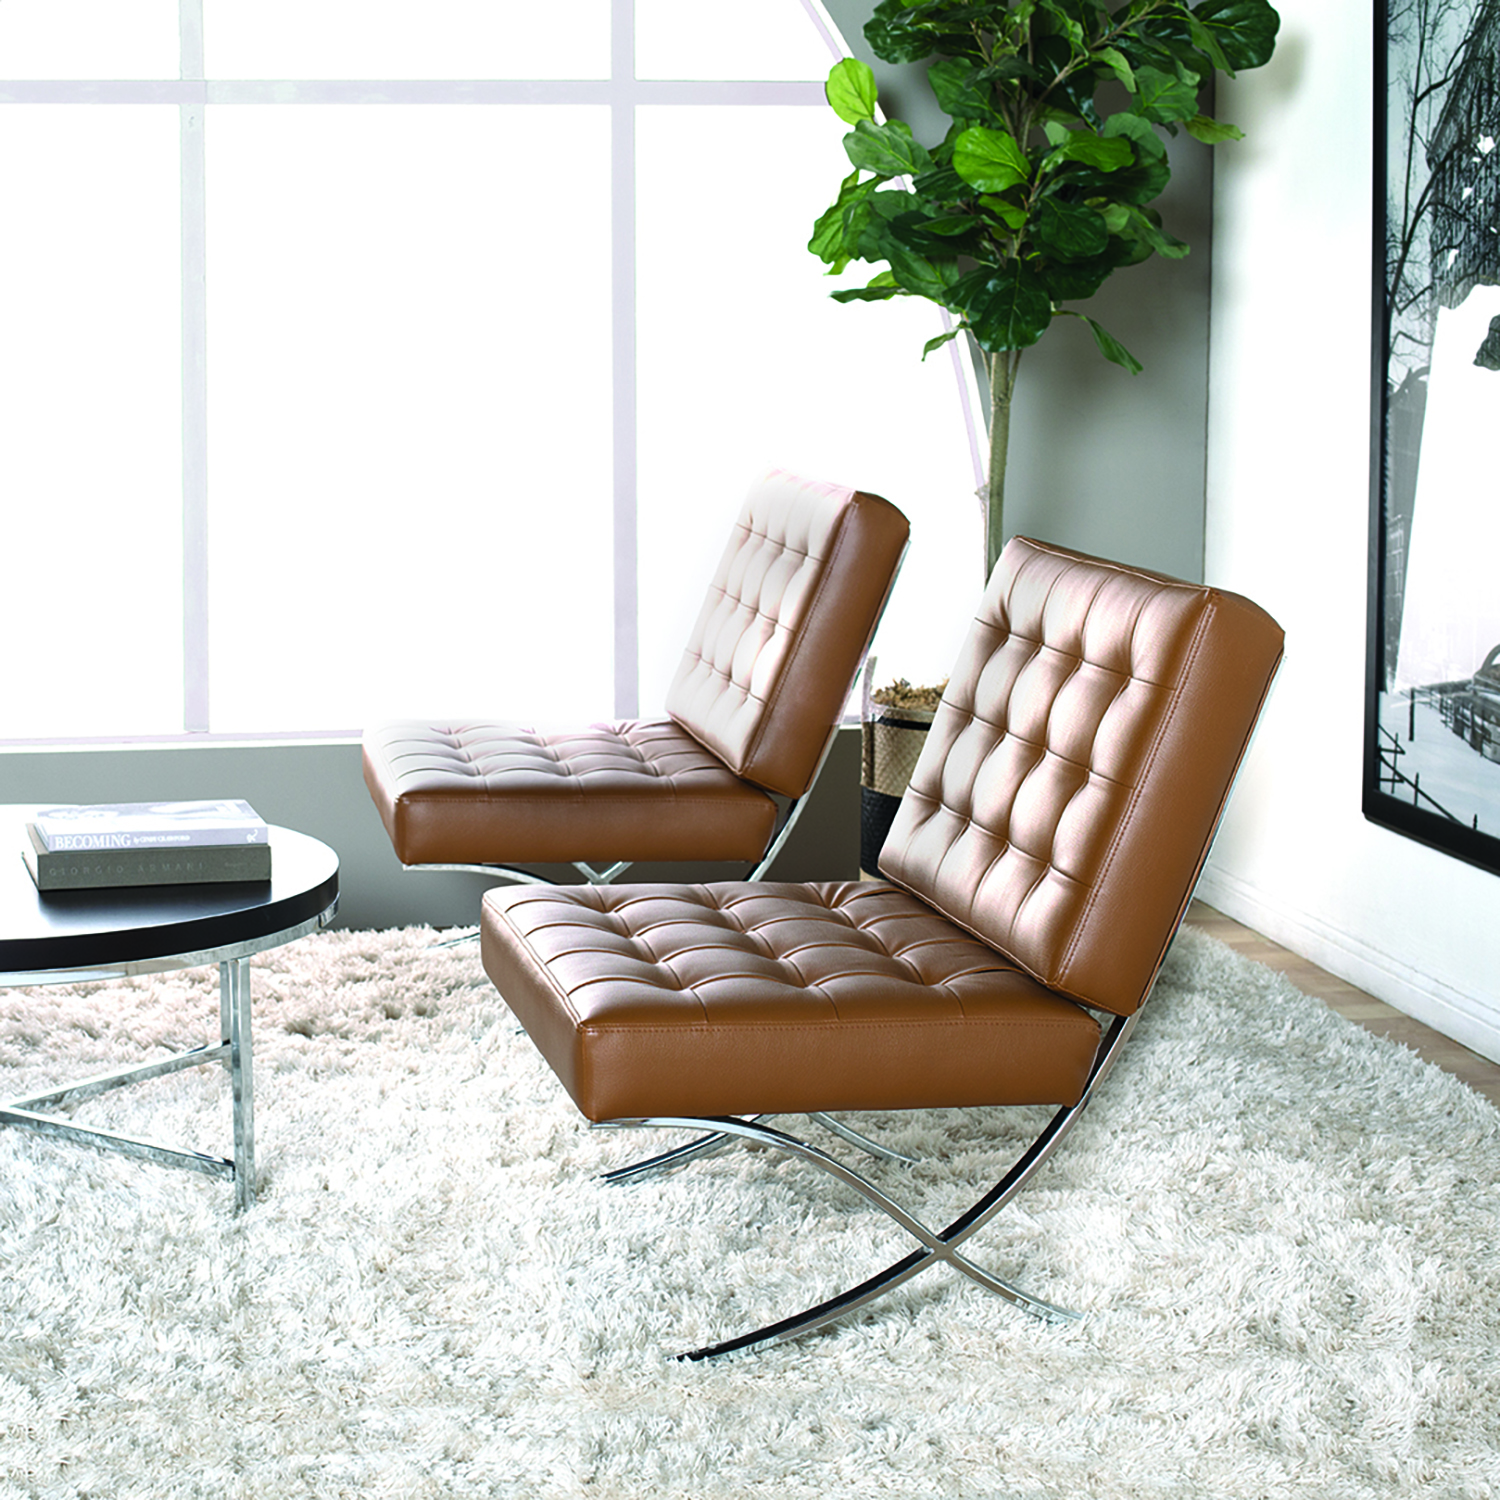 Picture of: Atrium Modern Bonded Leather Accent Chair In Caramel Brown Chrome Item 72031 Studio Designs